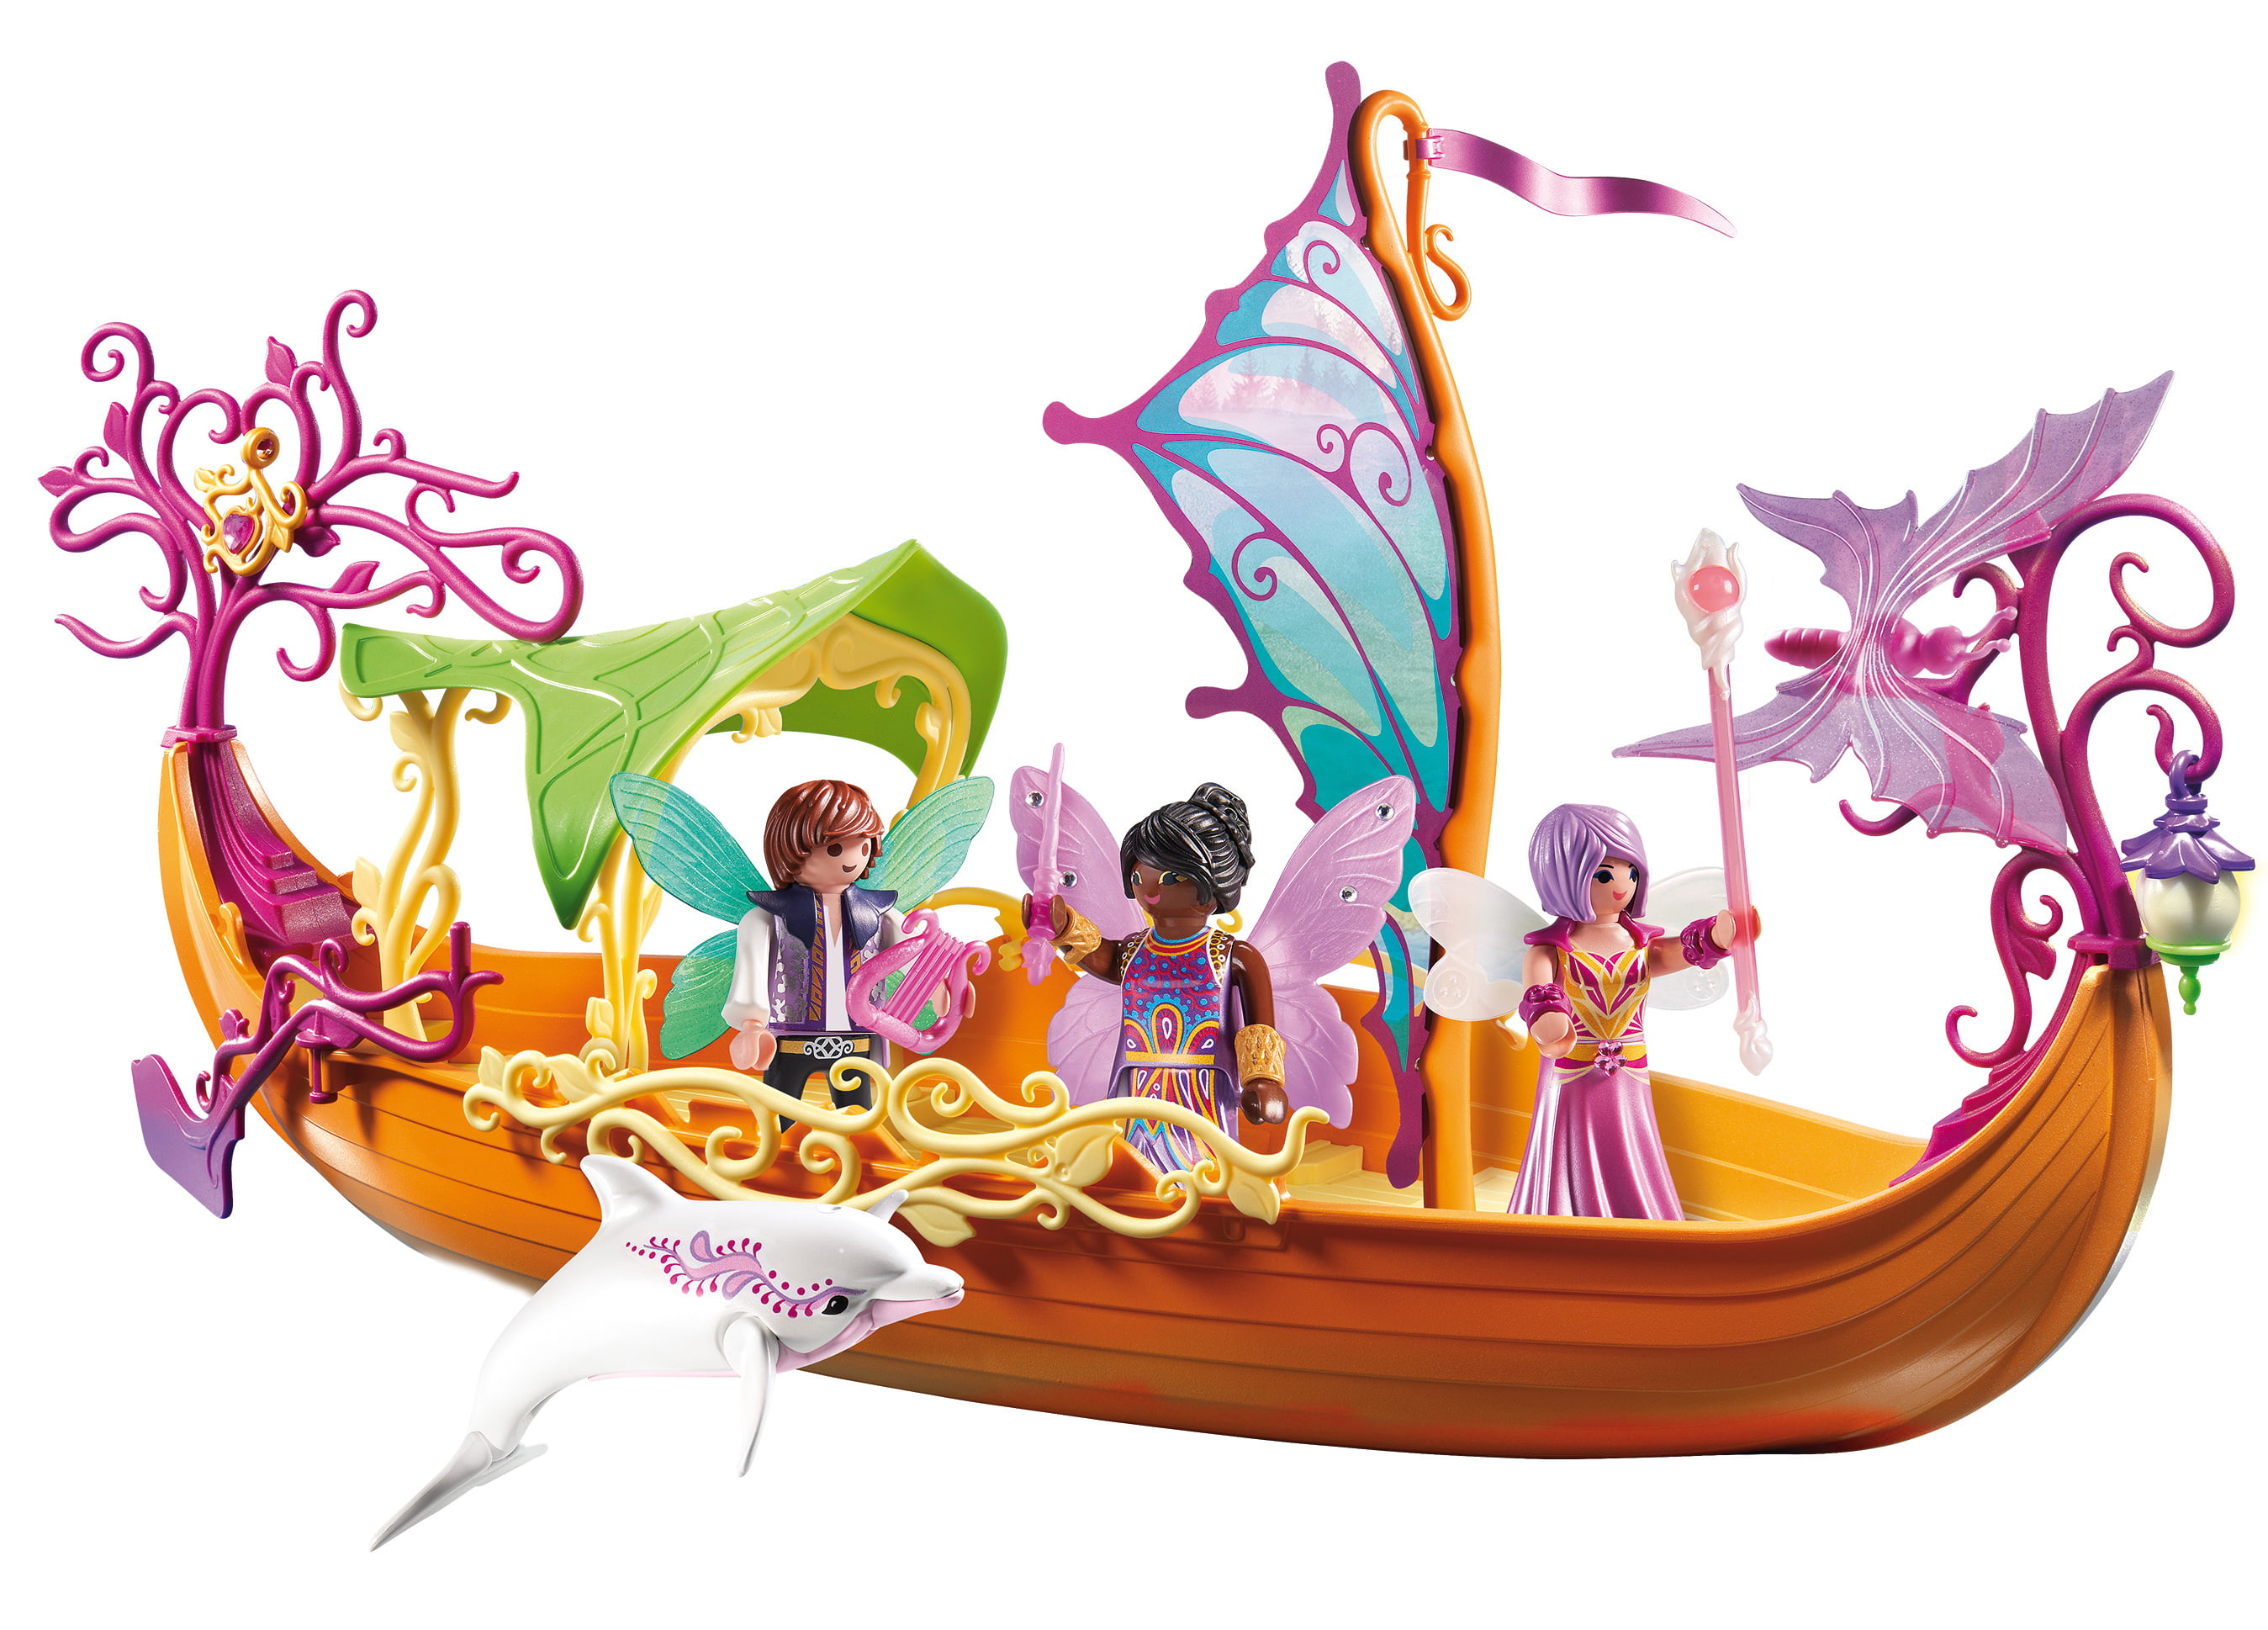 PLAYMOBIL Enchanted Fairy Ship by Playmobil